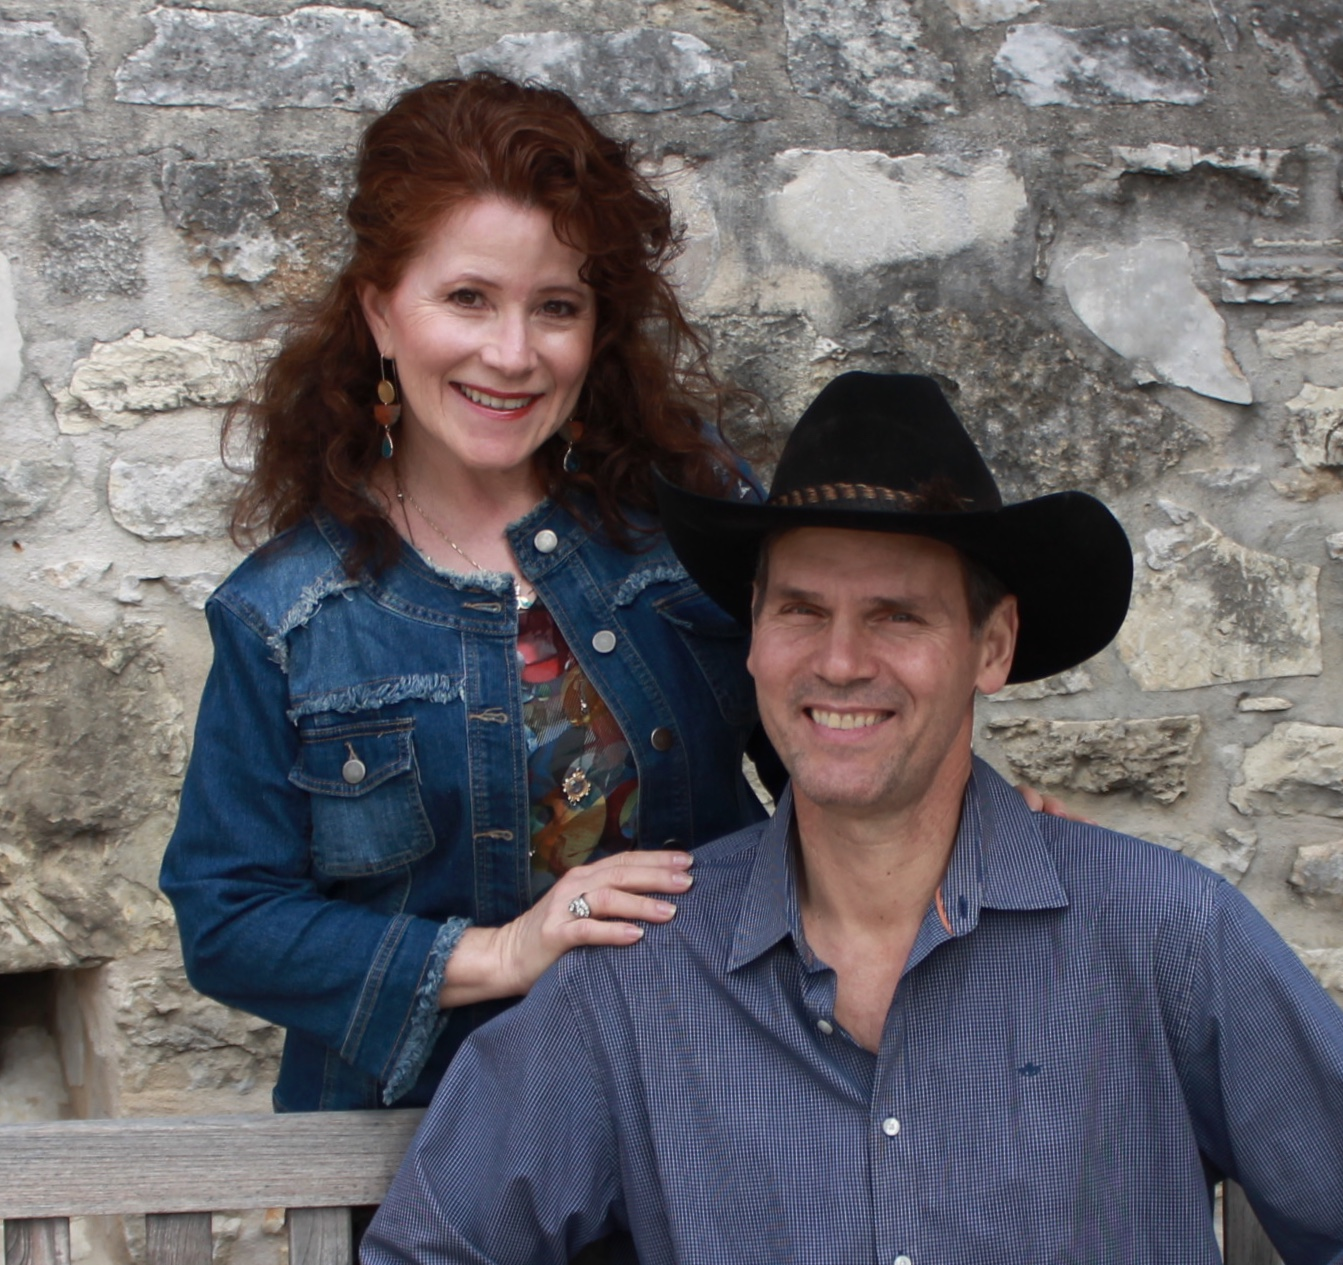 Brian & Mary Eckert - Welcome to the Ranch!We're 6th generation Texas, high school sweethearts, and longtime local business owners who love the Texas Hill Country. My husband Brian was born and raised on the ranch and continues to carry on the traditions of farming and ranching at the Rafter E. Planning a family wedding of our own inspired Brian and I to share our beautiful ranch with hill country brides. After months of planning, hard work, and dedication, our dreams have finally come true!We think our views and scenery are the most beautiful you'll find in the hills (but we're a little biased) and our generous seating capacity for both indoor and outdoor ceremonies will accommodate your guests with ease. With years of customer service experience, we understand the importance of professional and efficient support to create first-class events.We can't wait to meet you and look forward to making your special day an event to remember!